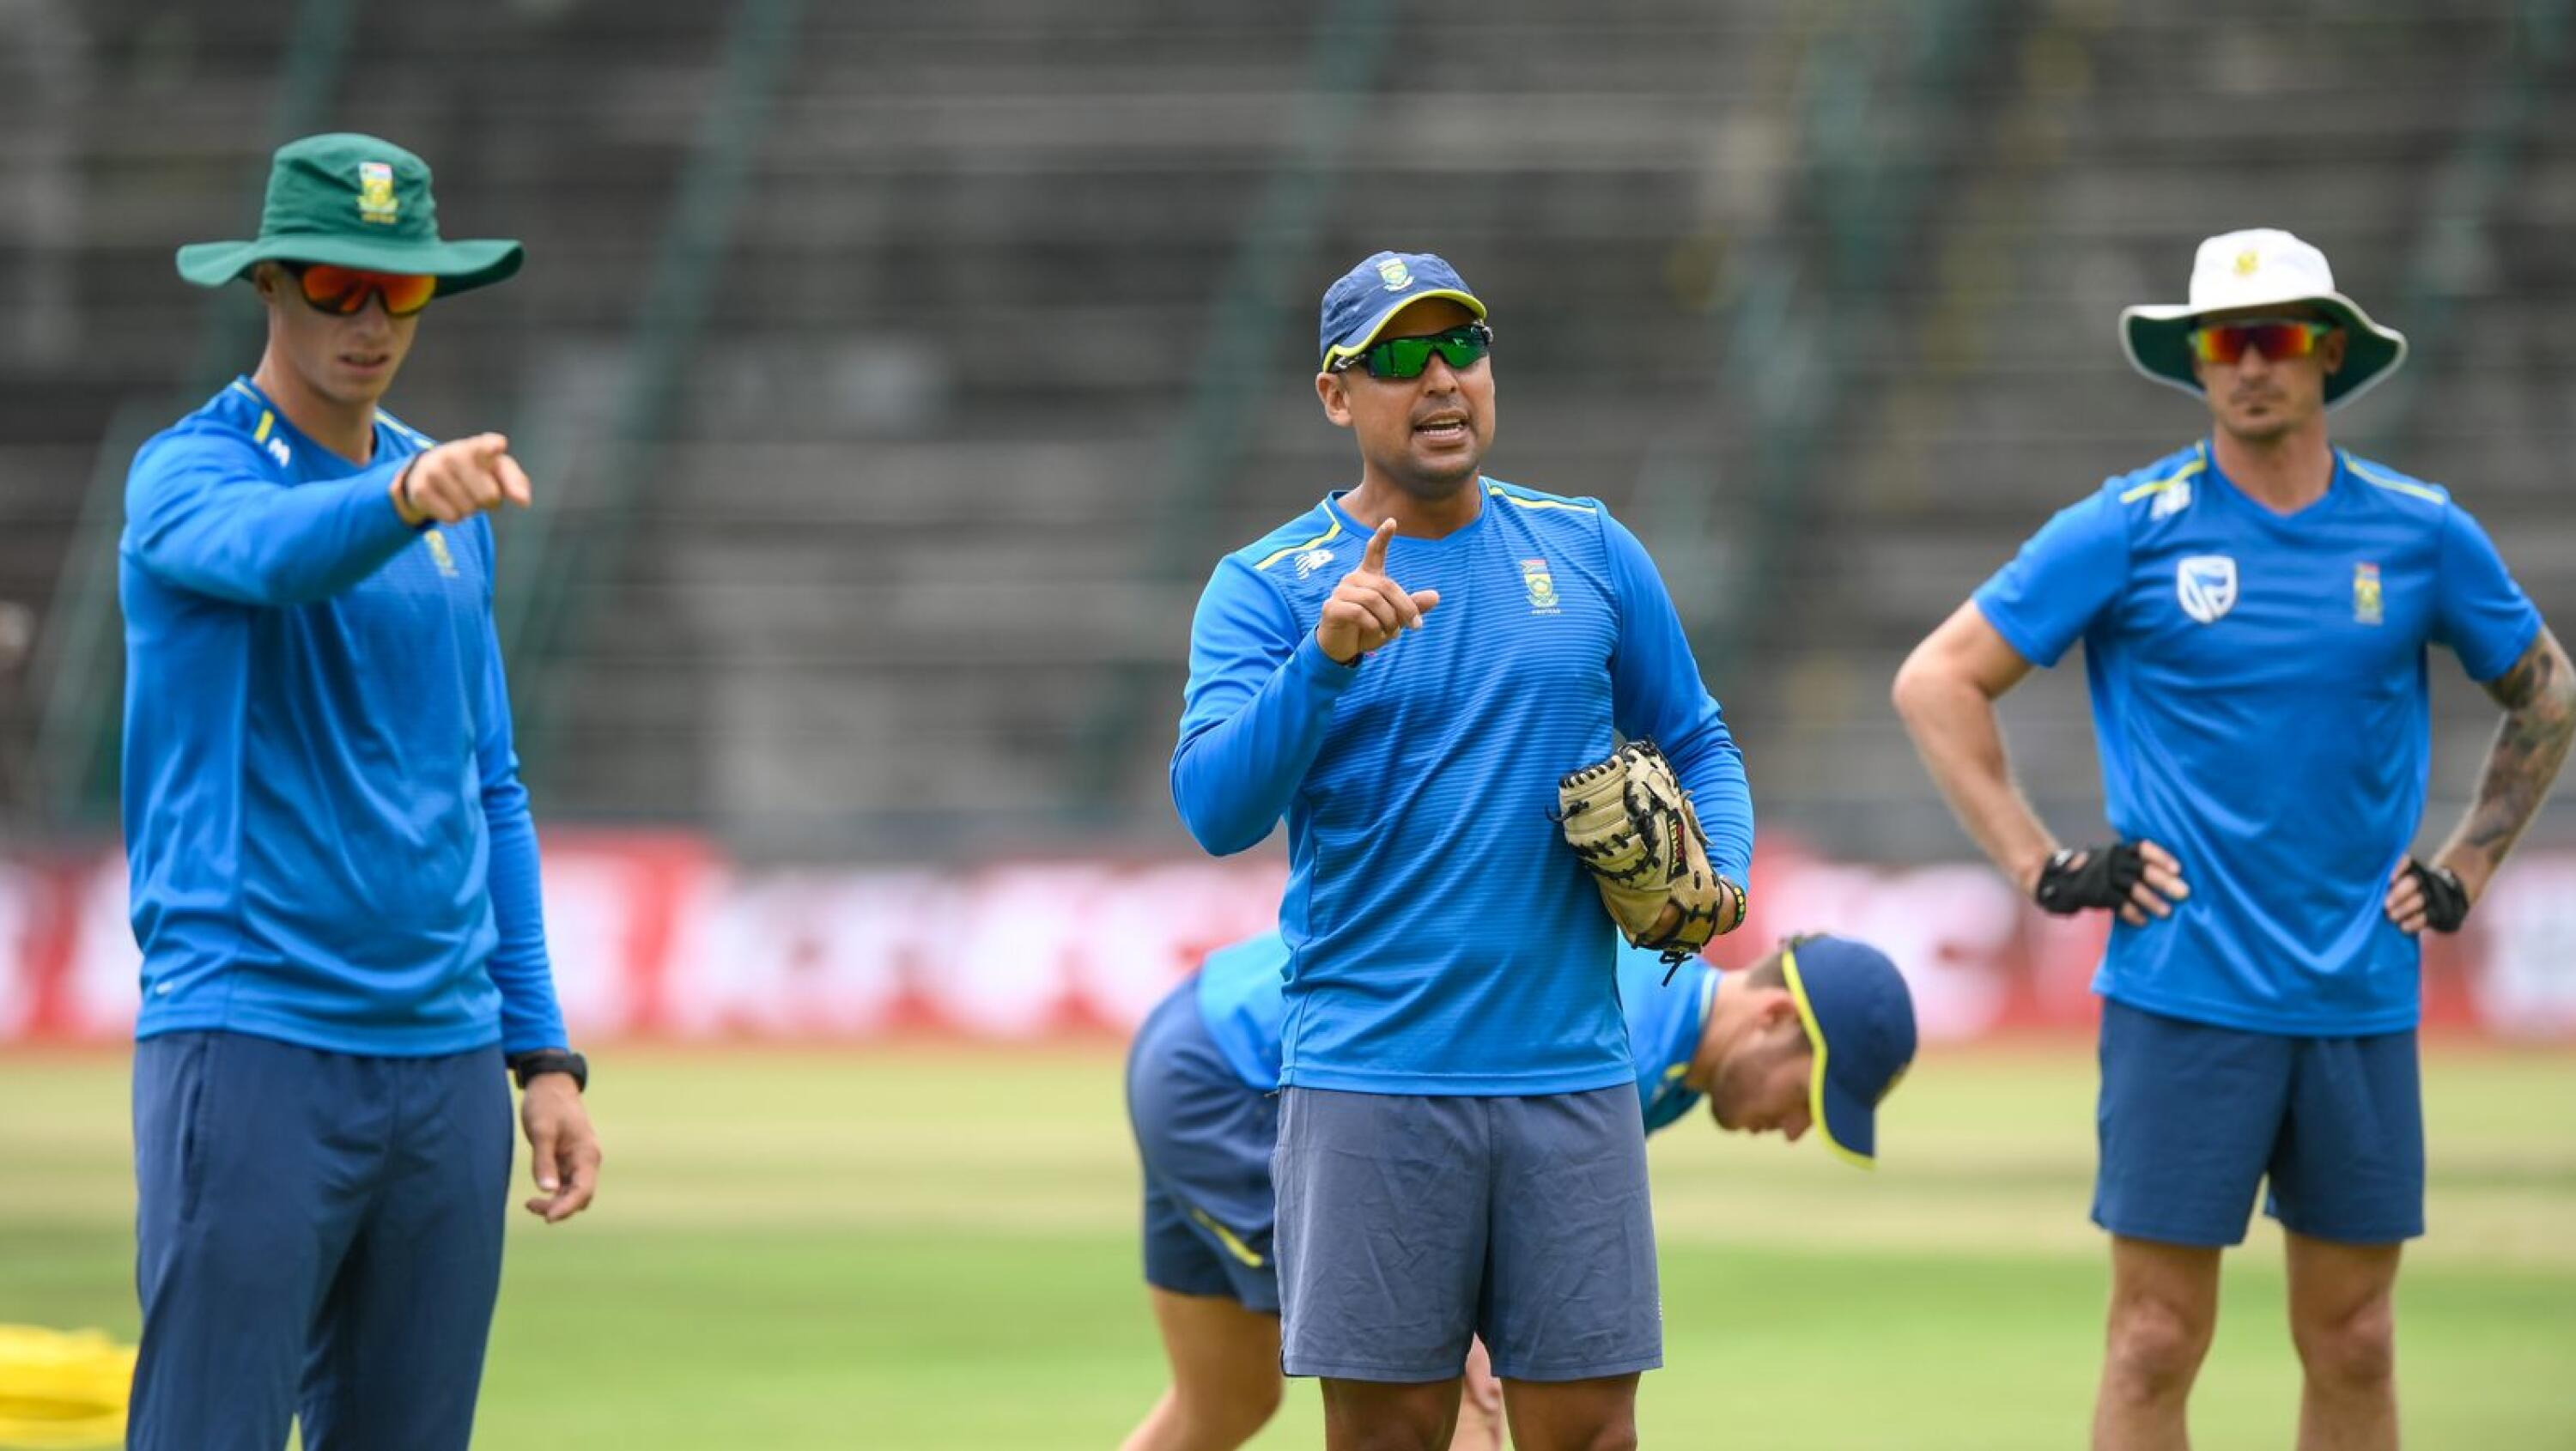 Proteas fielding coach Justin Ontong says the team will have to maintain their standards in the field when they go into the second Test against the West Indies on Friday